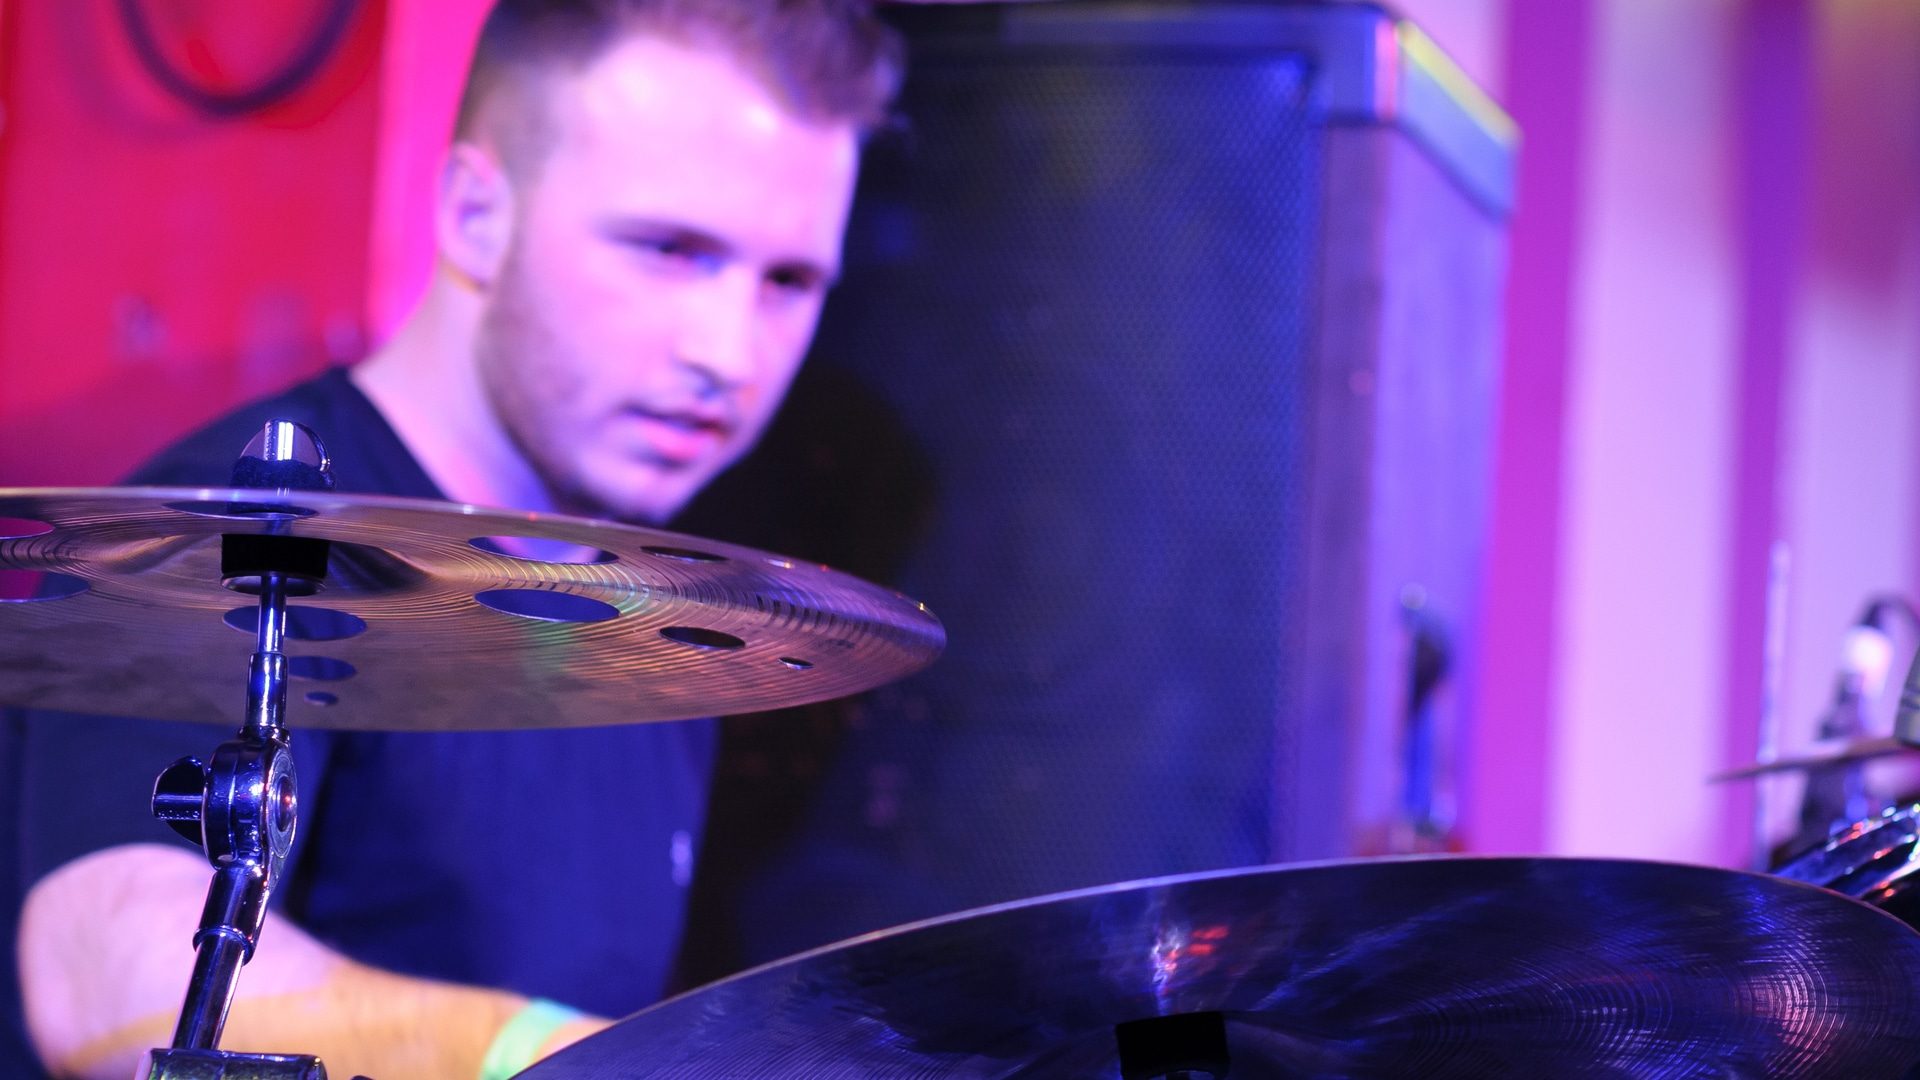 Matt Furness Drummer